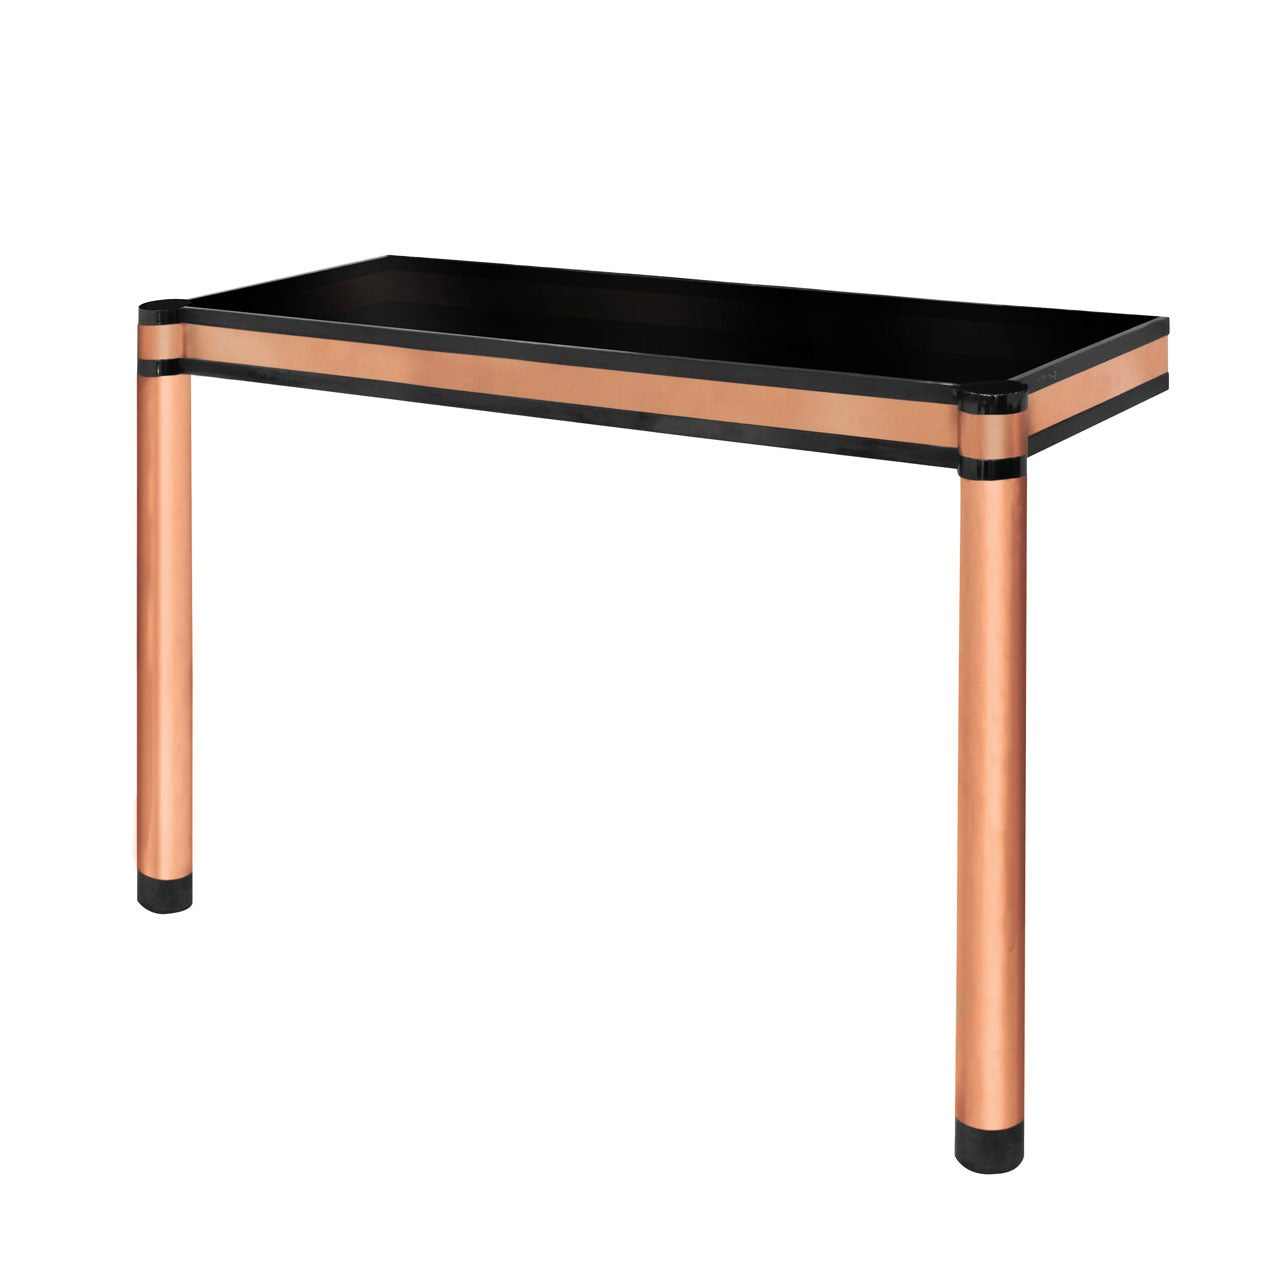 WallMounted Round Leg Console Table by Karl Springer For Sale at